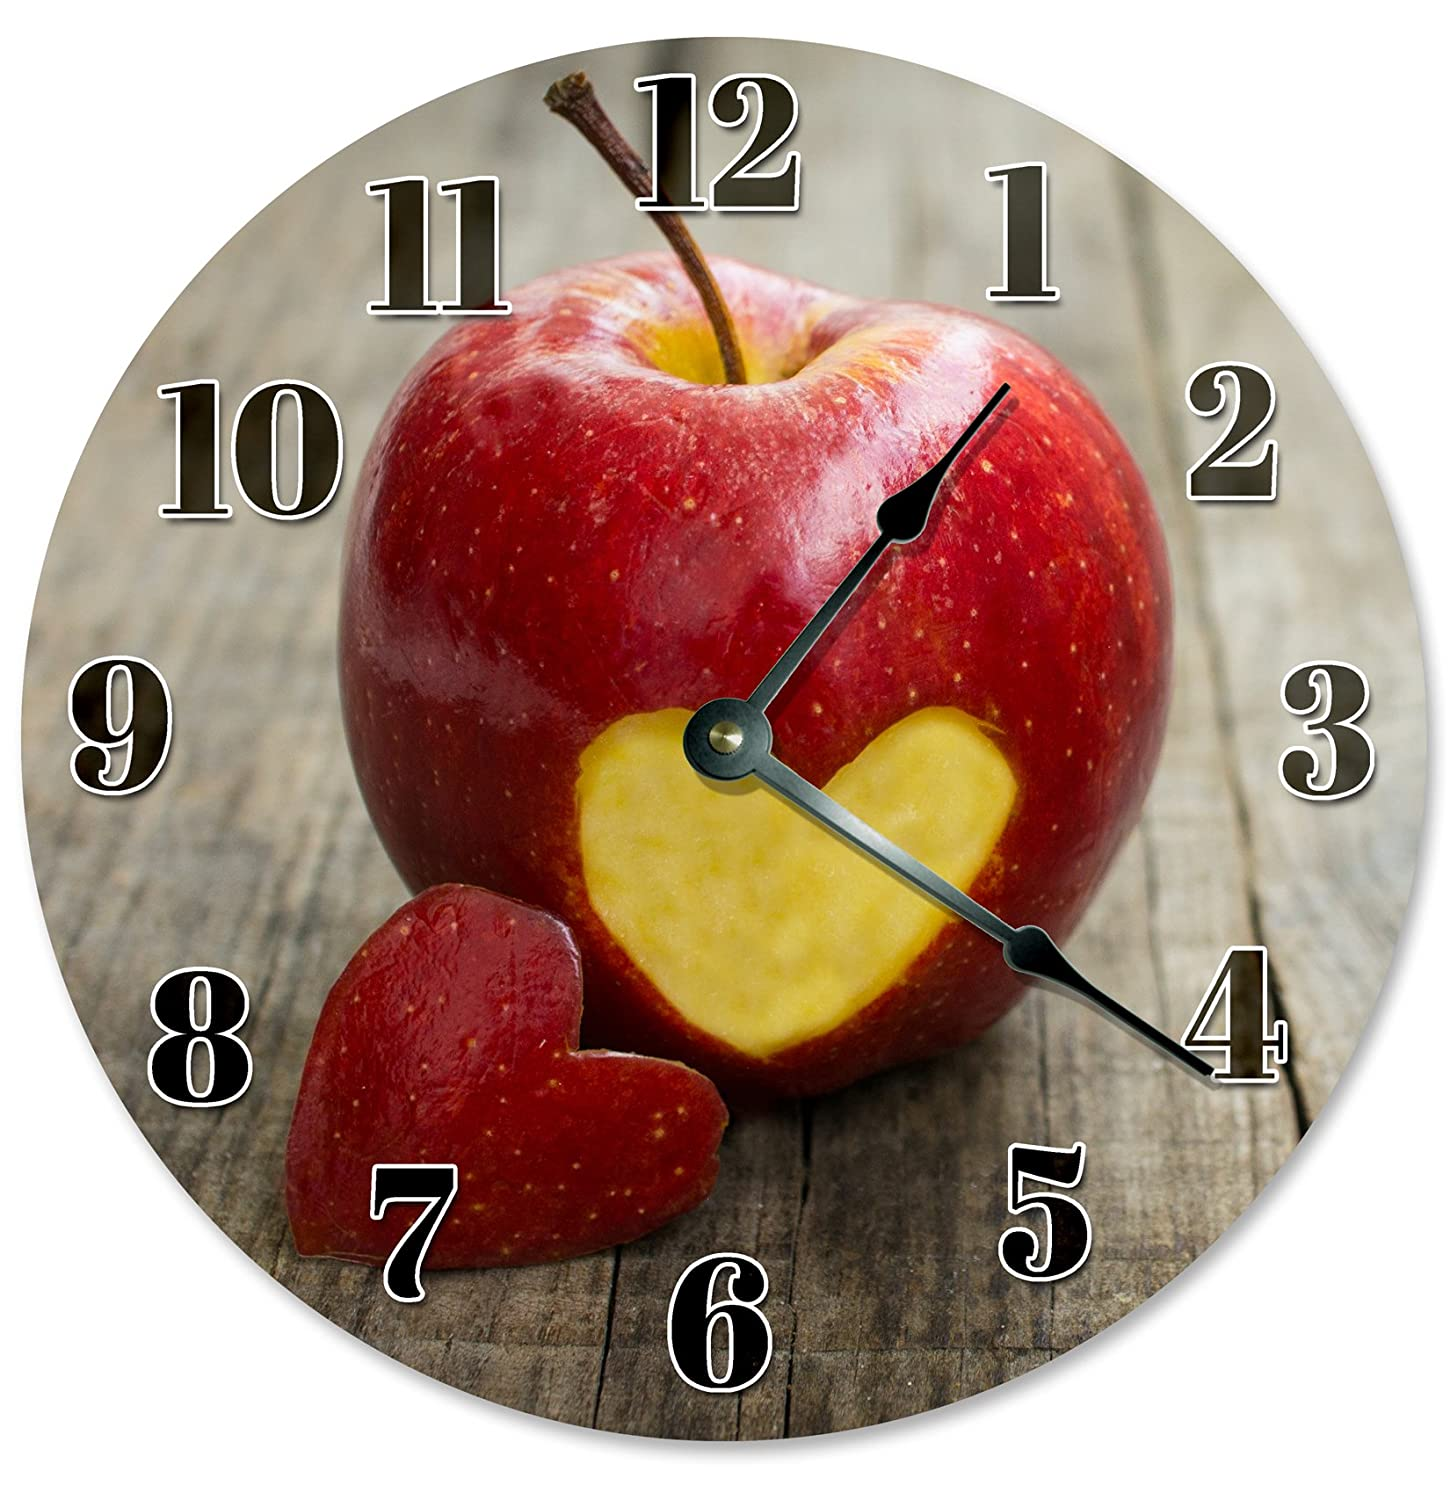 "Large 10.5"" Wall Clock Decorative Round Wall Clock Home Decor Novelty Clock APPLE WITH HEART CUT OUT"